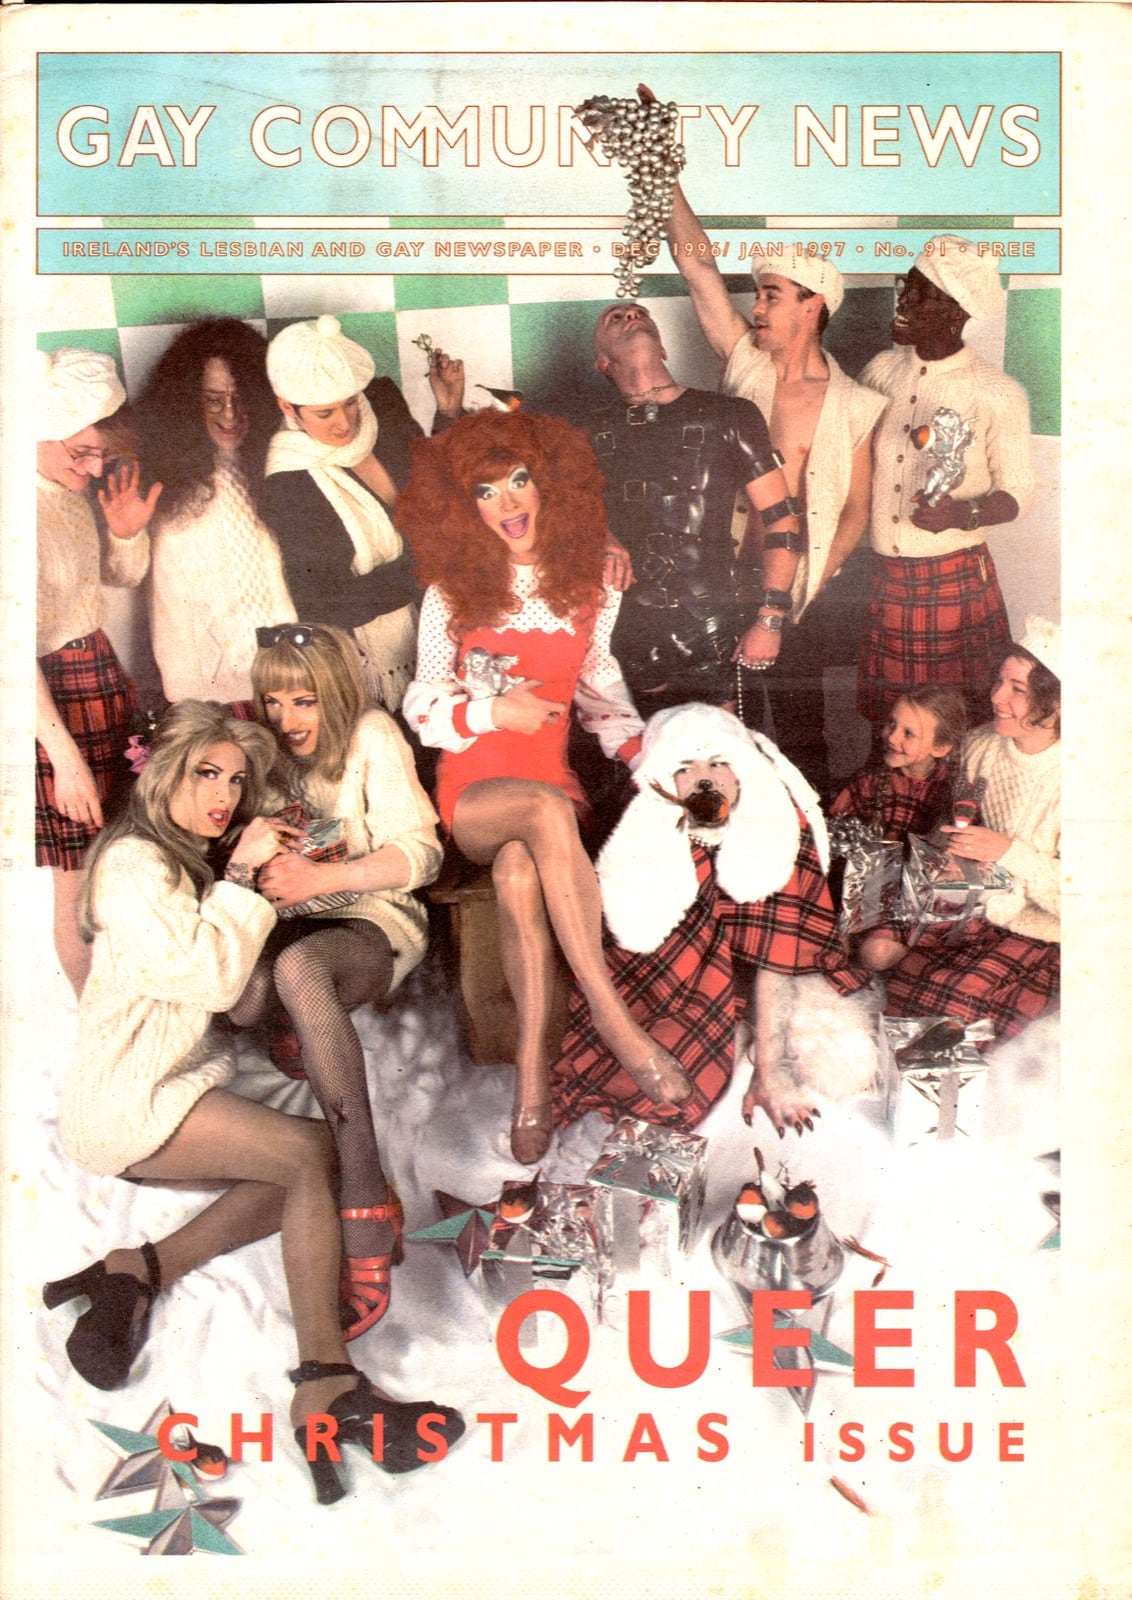 Some of GCN's covers from 1992 with drag queens and other LGBT+ people on the cover.